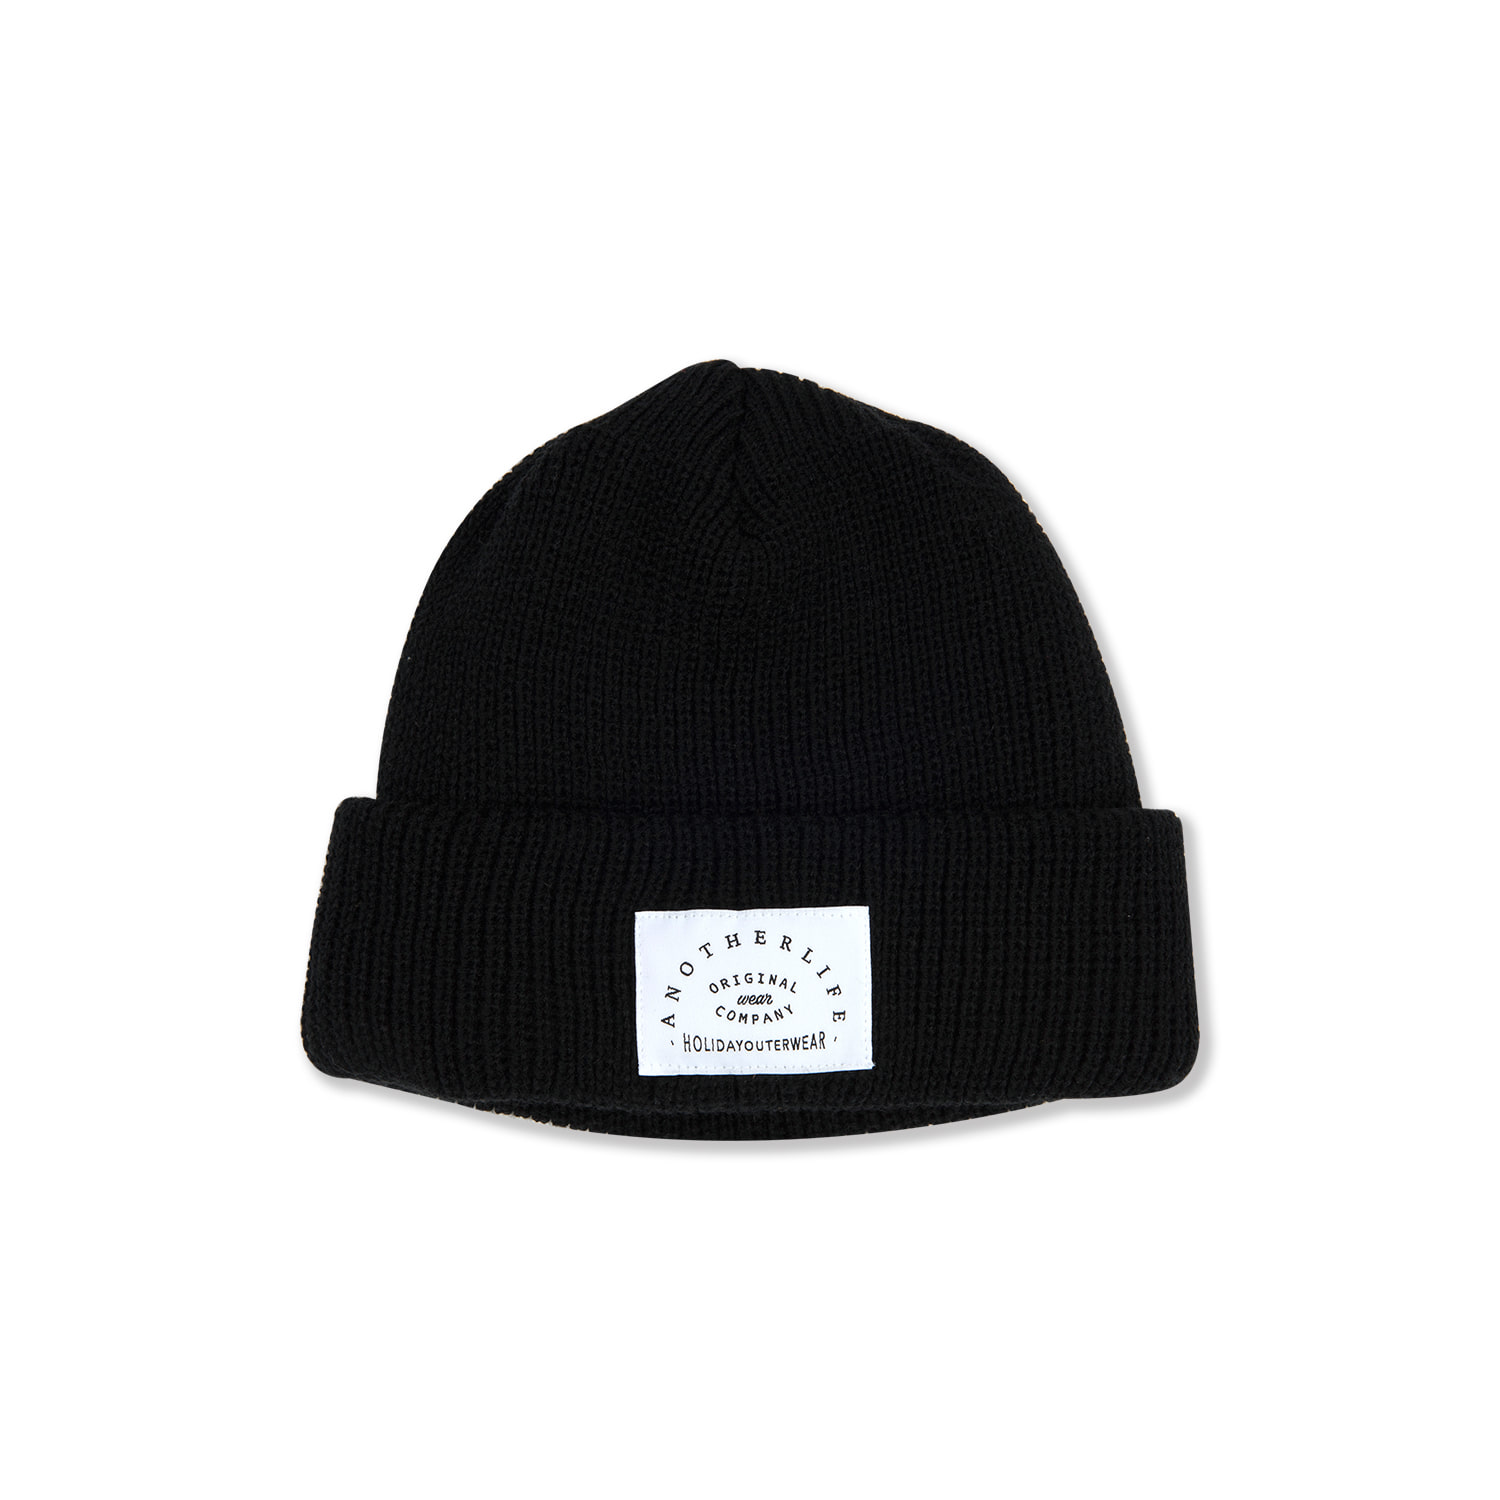 CLASSIC beanie - blackHOLIDAY OUTERWEAR